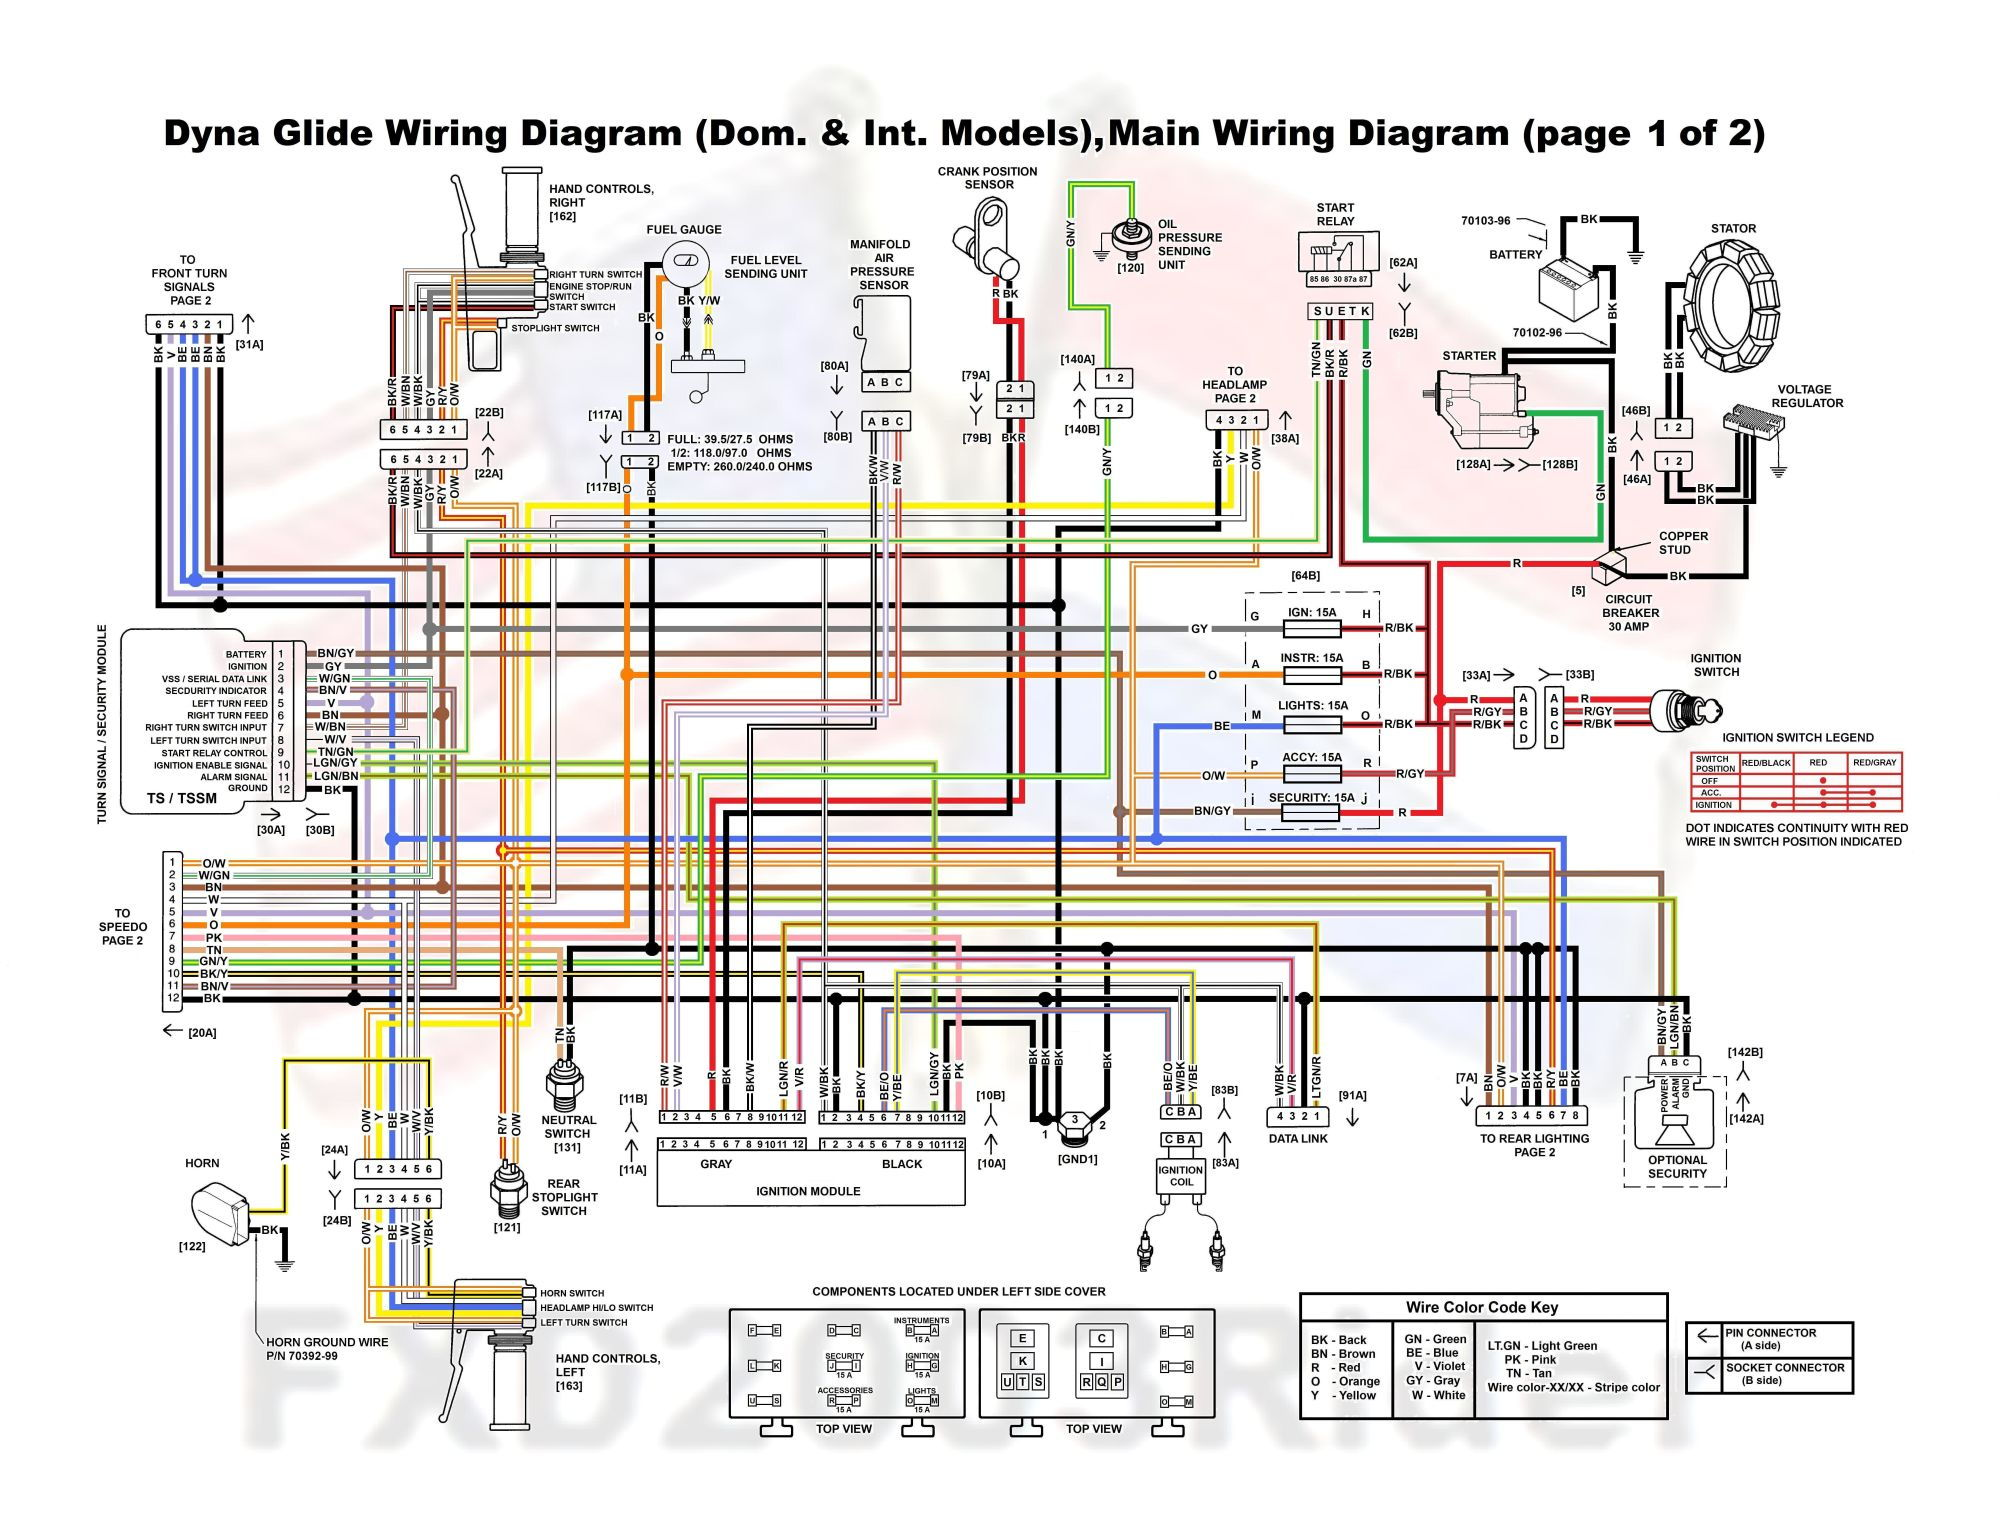 80 _kleur_en_wm_2003_dyna_glide_wiring_diagram_dom_int_models_main_wiring_diagram_page_1_of_2_89aa5bfbfe3bdf104c1e84165cbae702feebd8cc_970b11171da5e76f156265415c7fb81c65f2e08a dyna wiring diagram harley wiring diagrams simple \u2022 wiring 2002 harley davidson softail wiring diagram at edmiracle.co